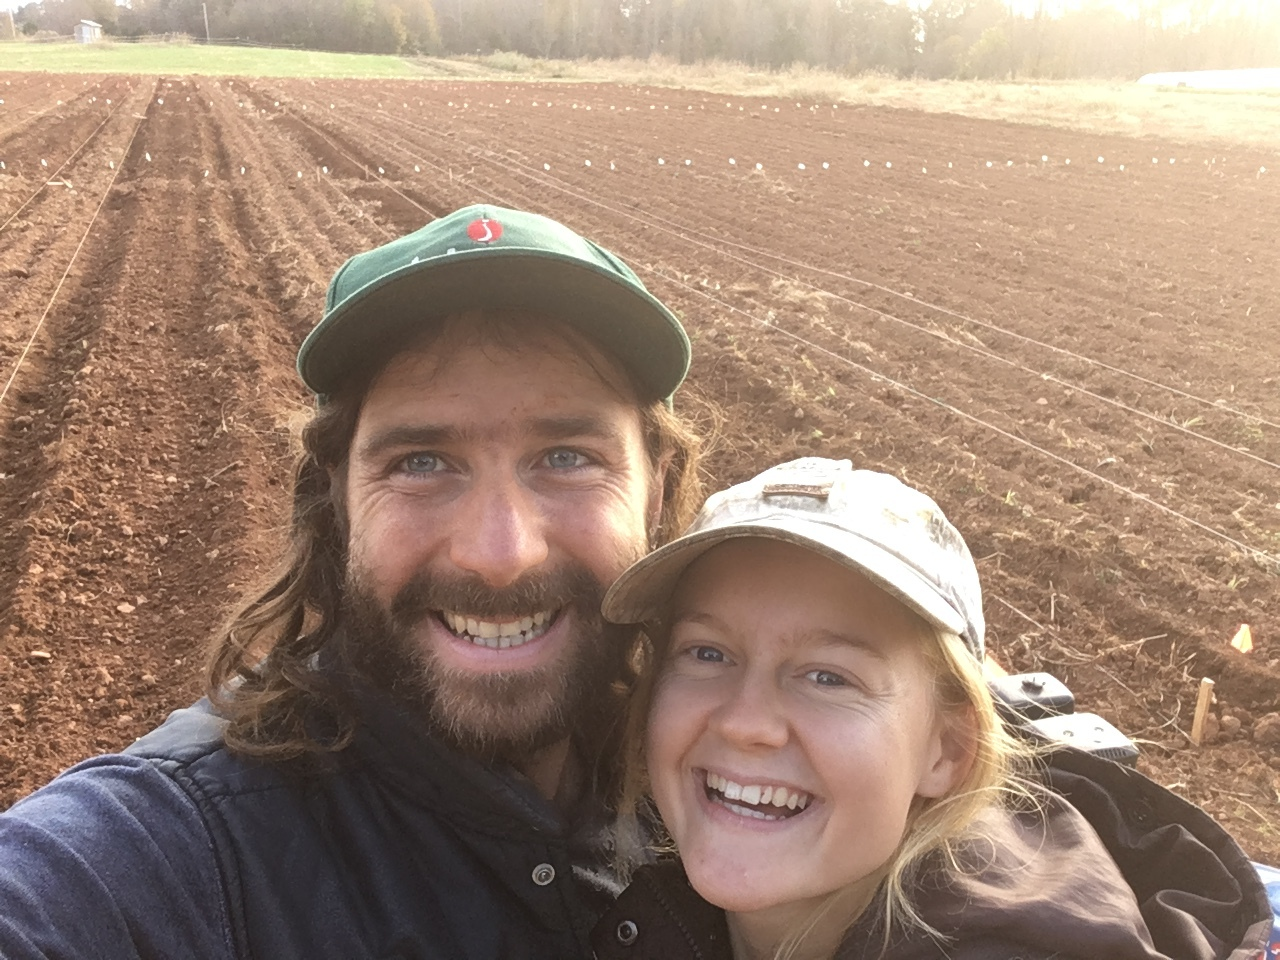 Meet Your Farmers - Two people with a passion for plants, food, & the environment. Cultivating plants and community.